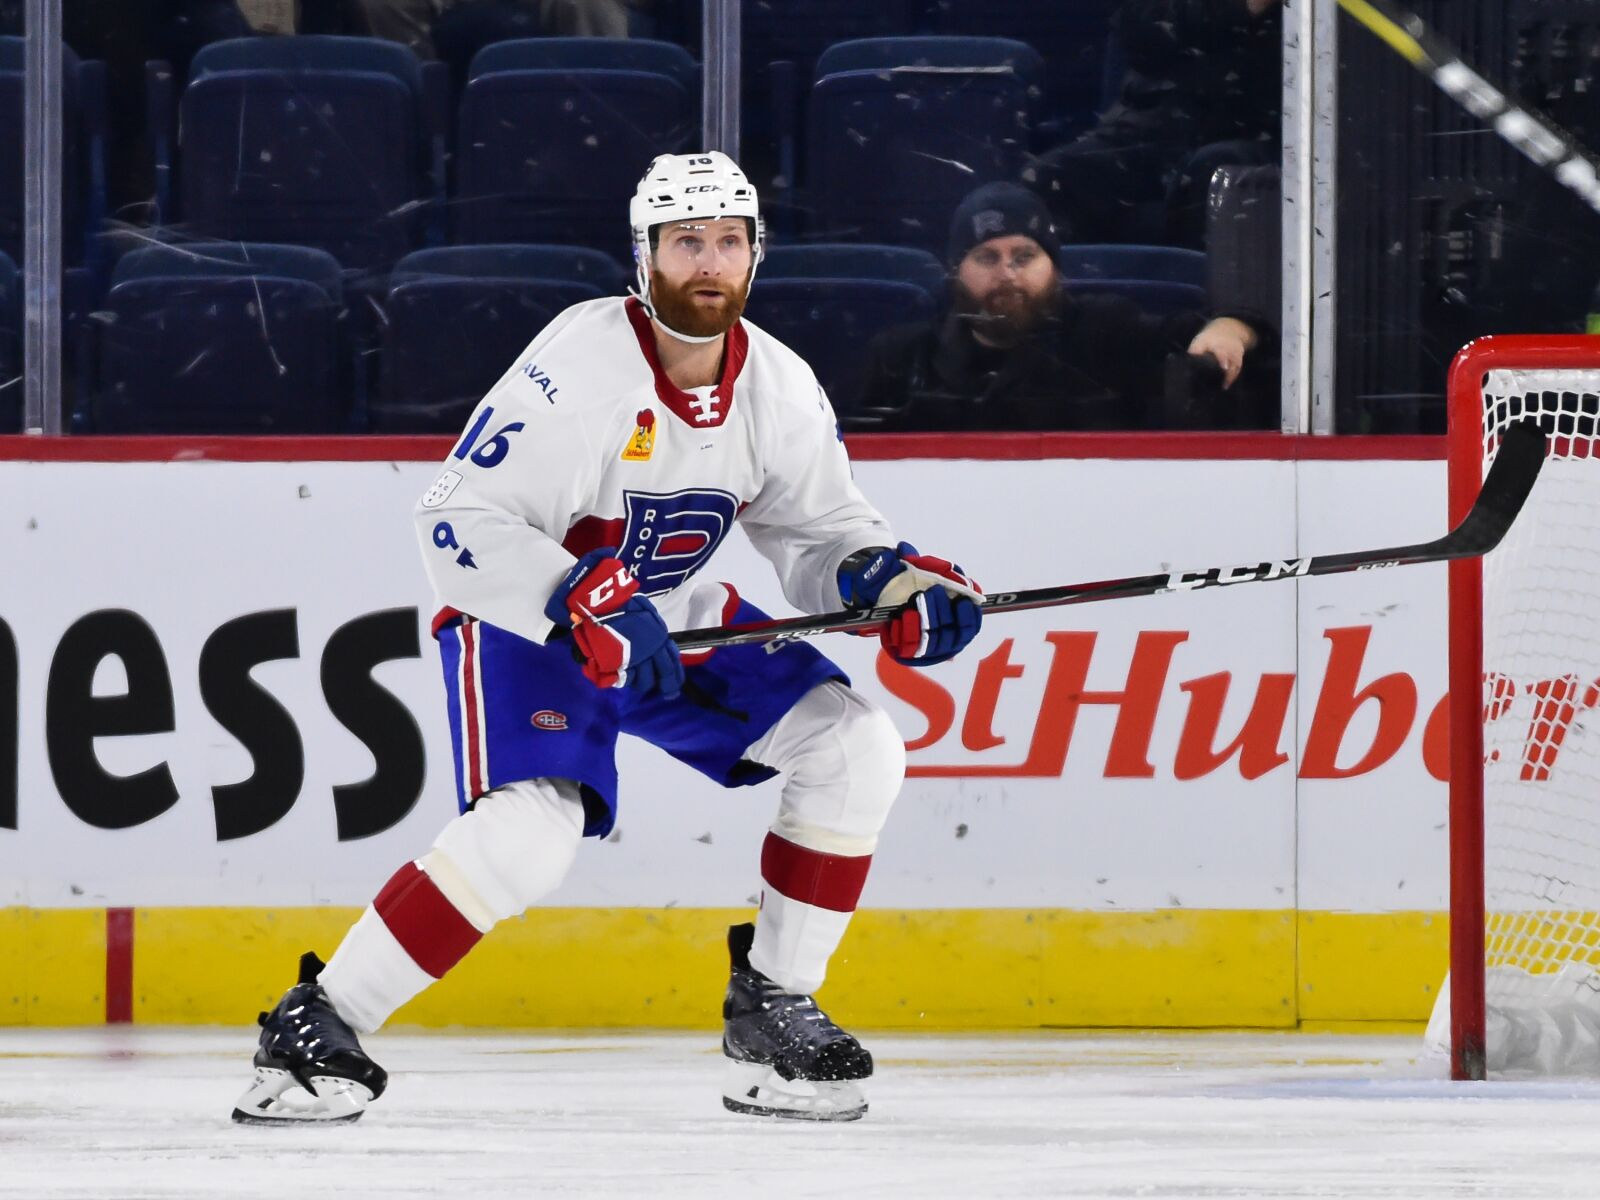 Karl Alzner is back up with the Montreal Canadiens